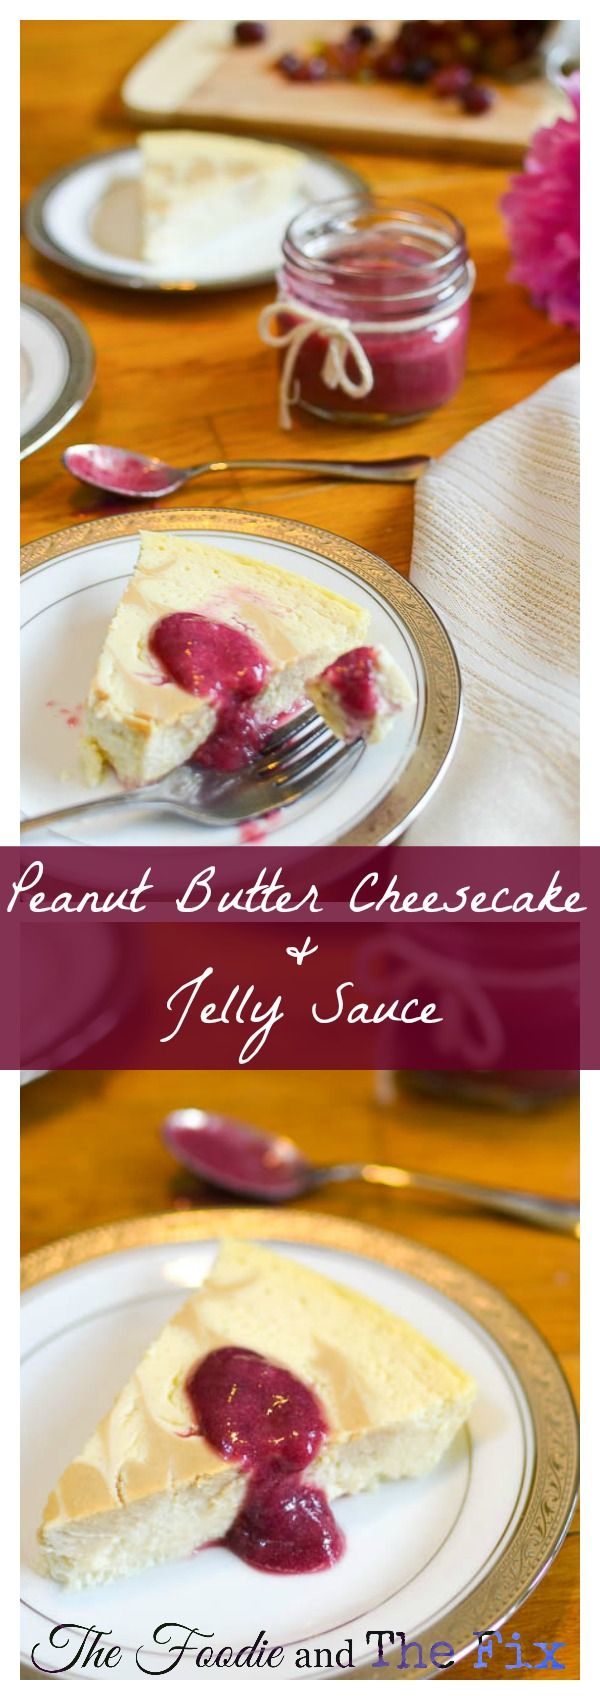 Yummy, healthy cheesecake! Super easy!! 21 Day Fix: 3/4 RED, 1/4 PURPLE, 1 TSP, 1 TSP SUGAR